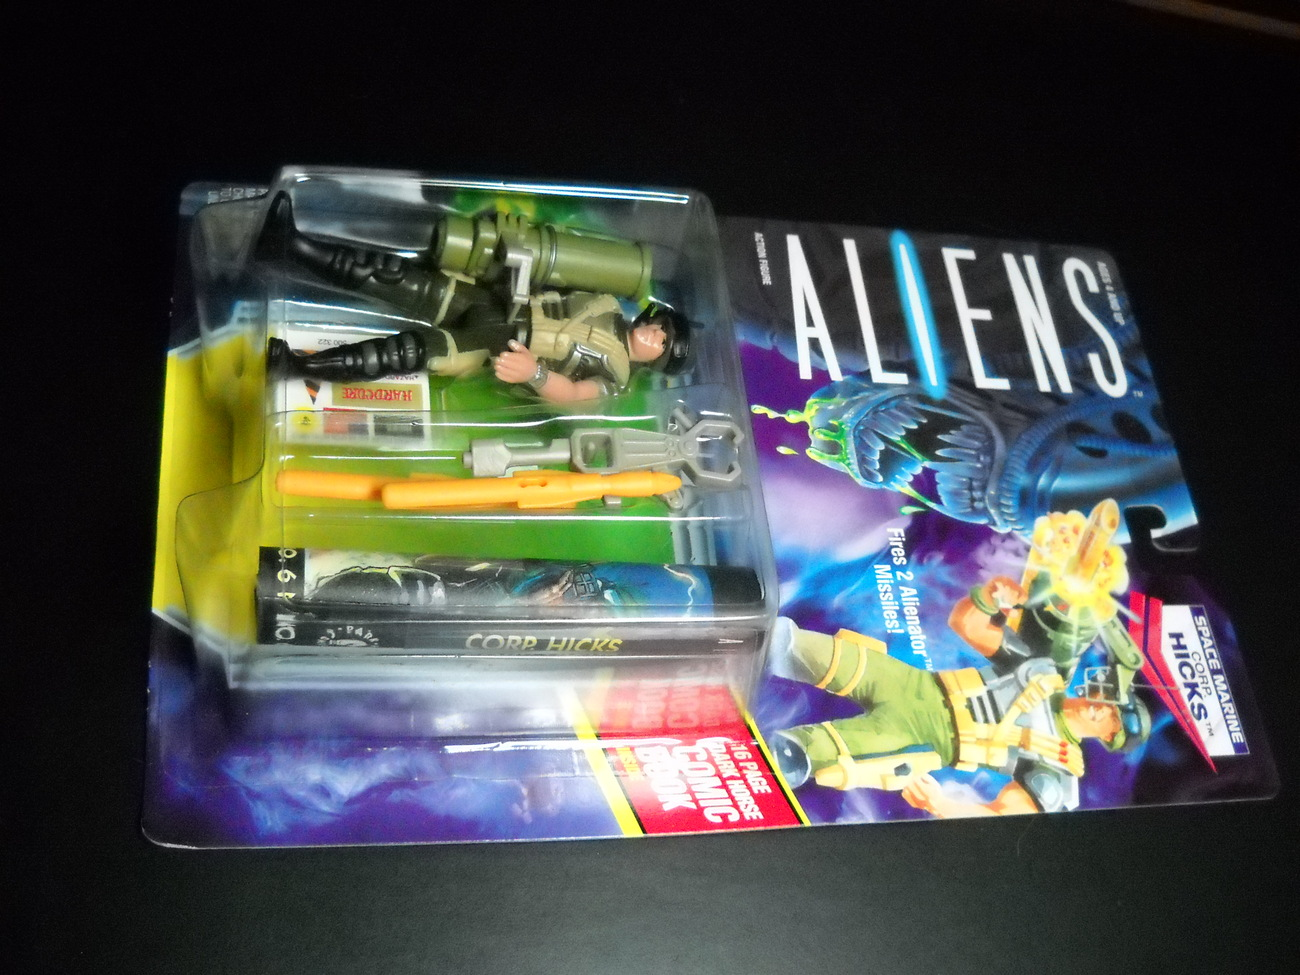 Toy aliens kenner 1992 corp hicks space marine moc 01